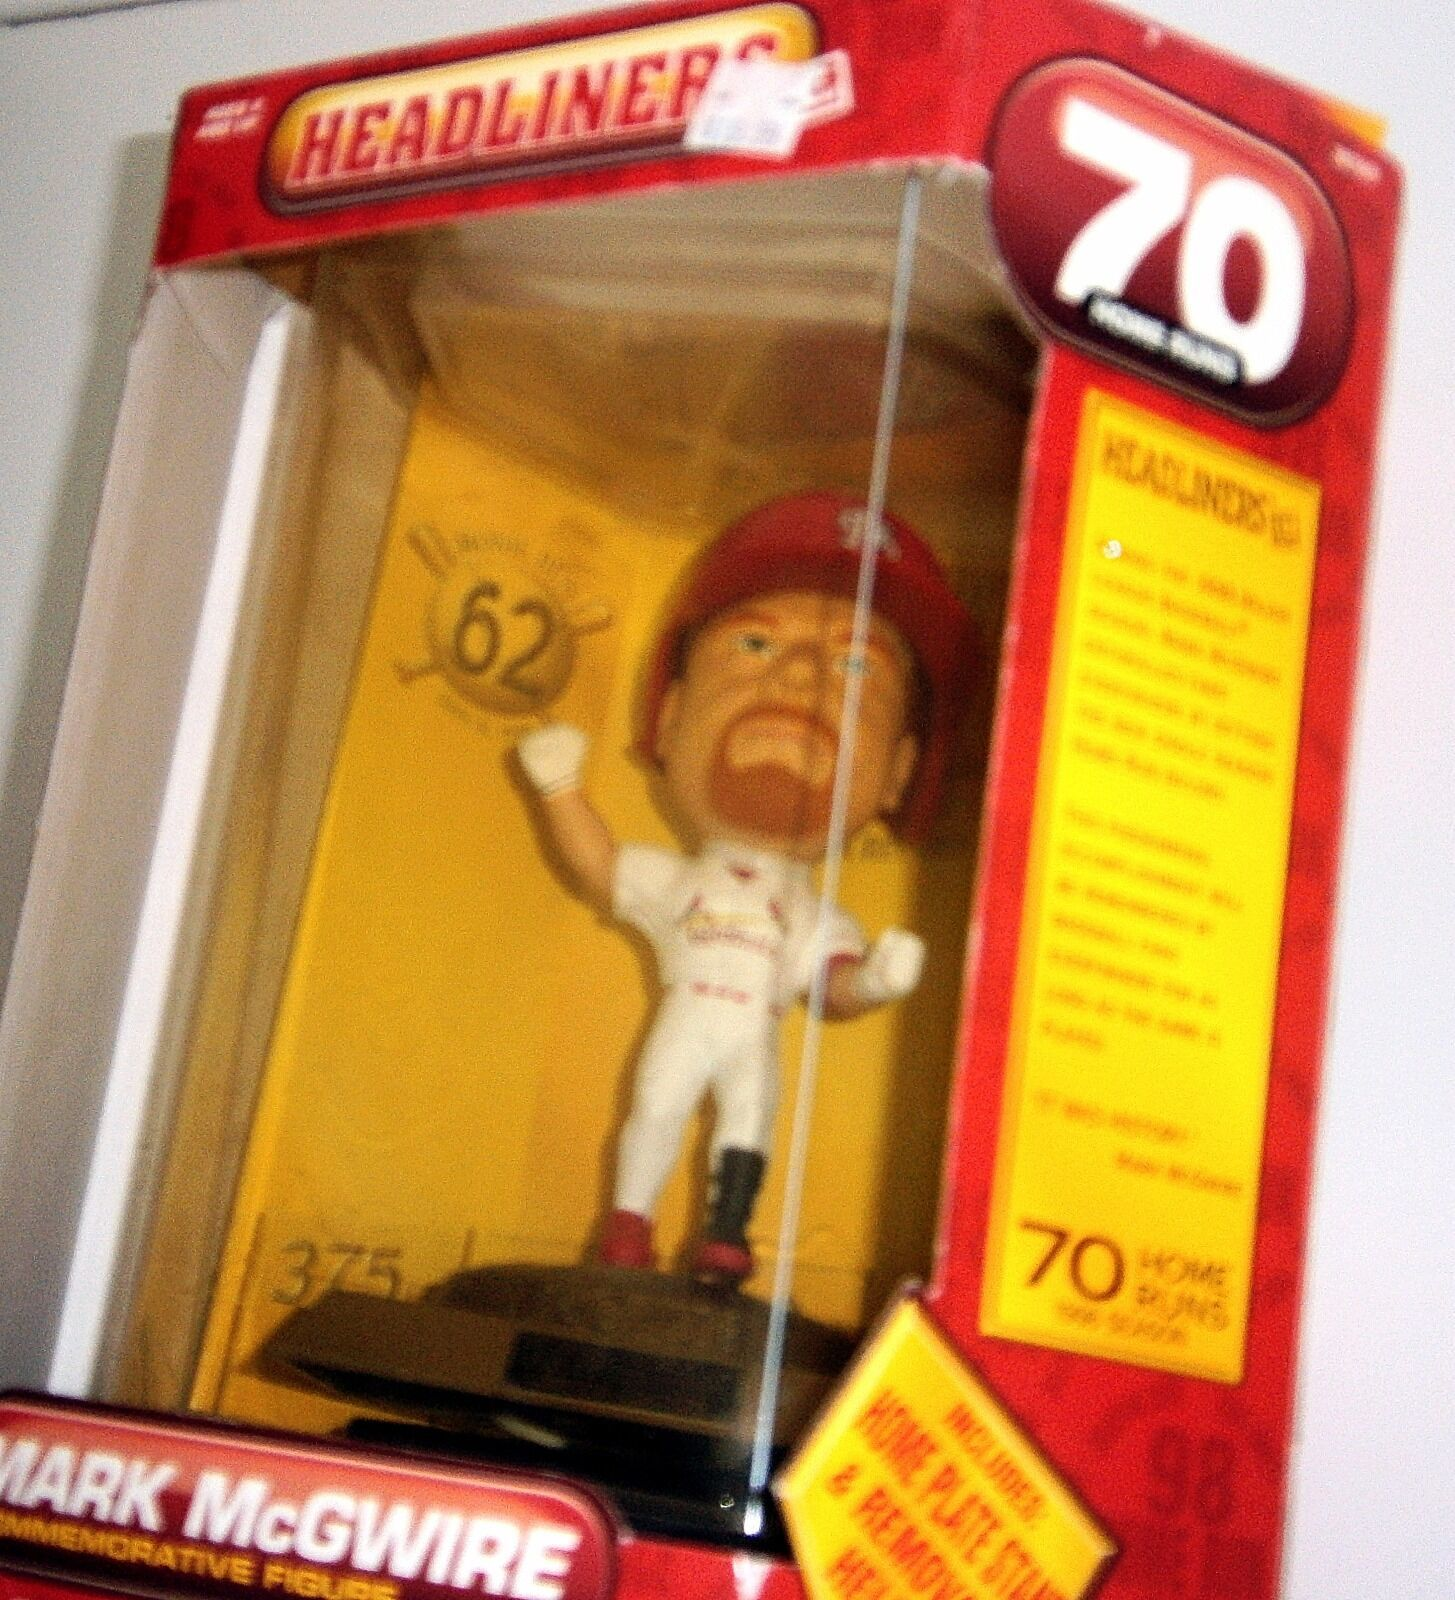 Primary image for Head Liners Mark McGwire Commemorative Figure